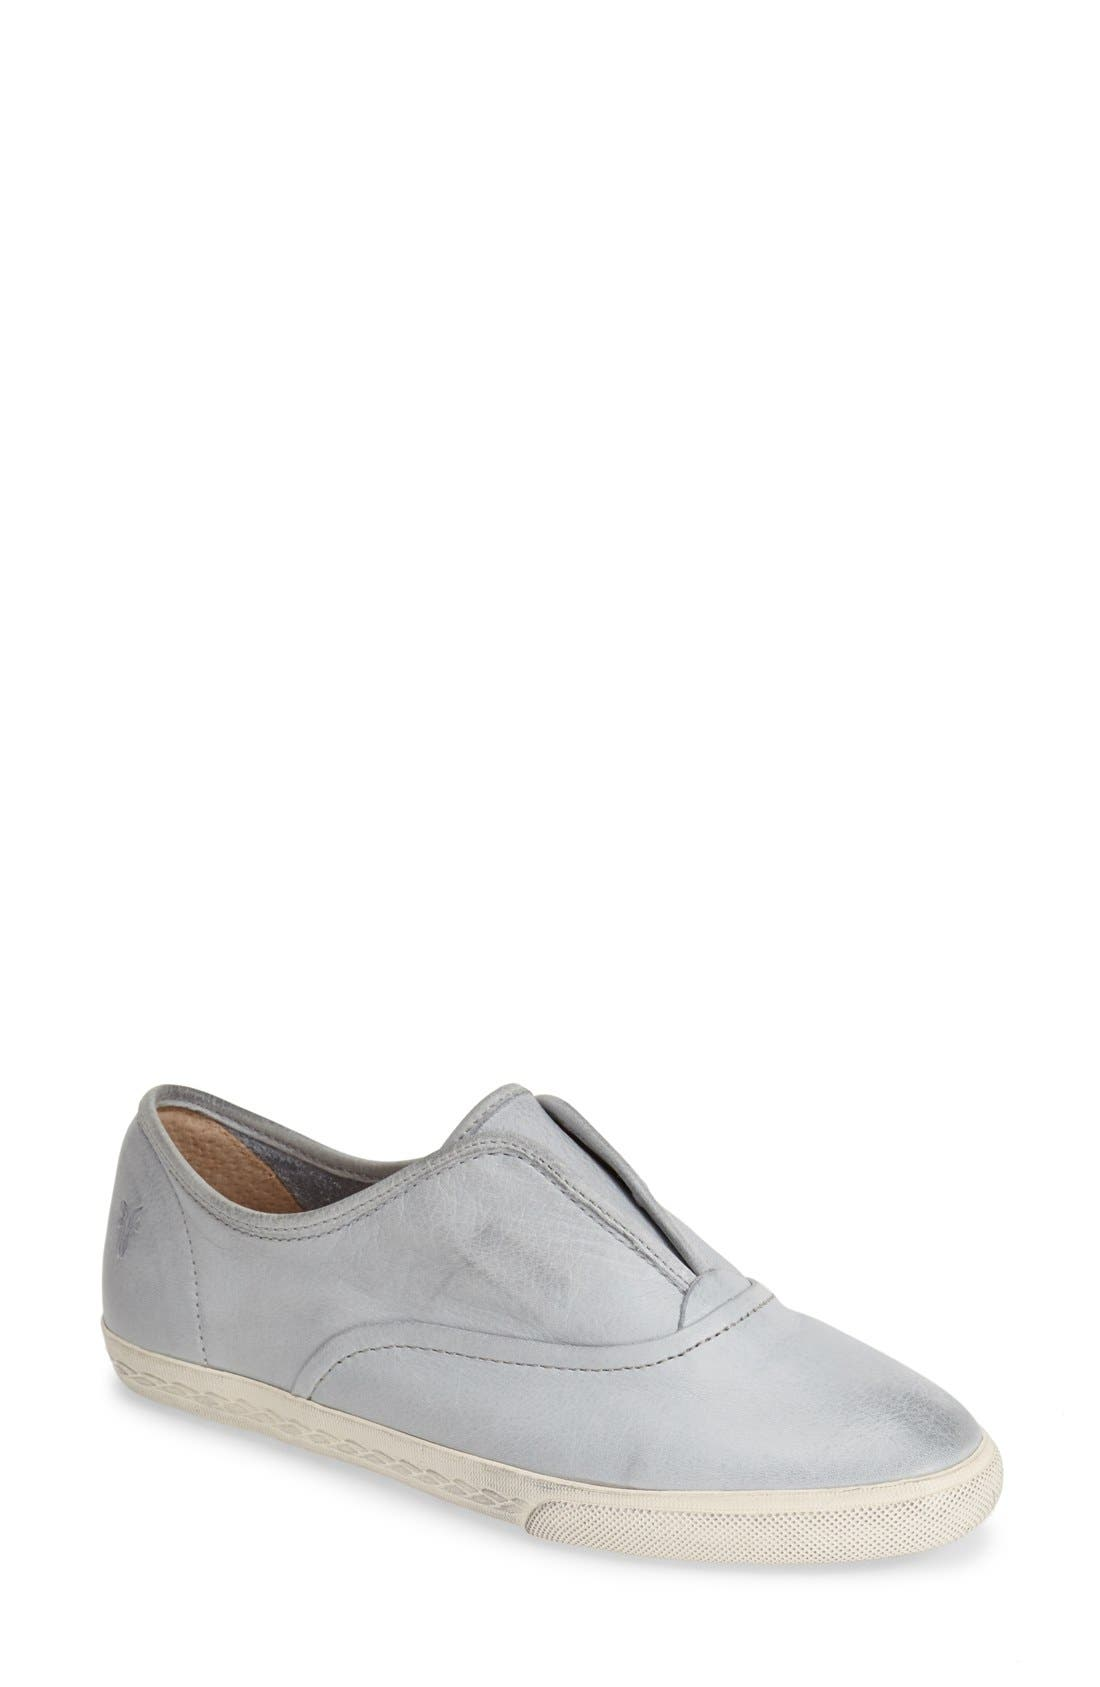 'Mindy' Slip-On Leather Sneaker,                             Main thumbnail 8, color,